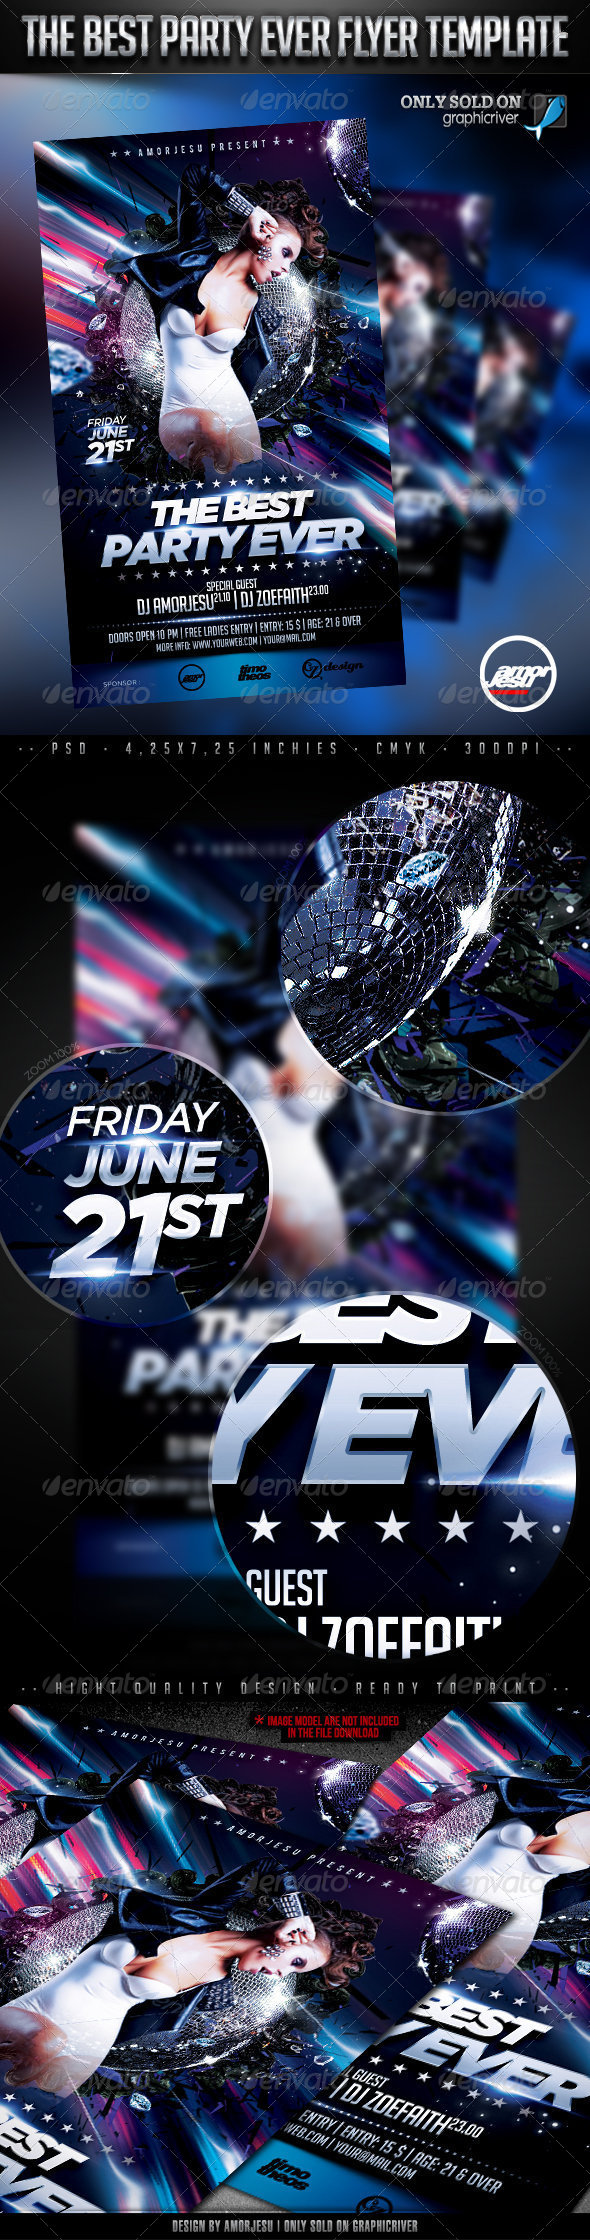 The Party Ever Flyer Template - Clubs & Parties Events